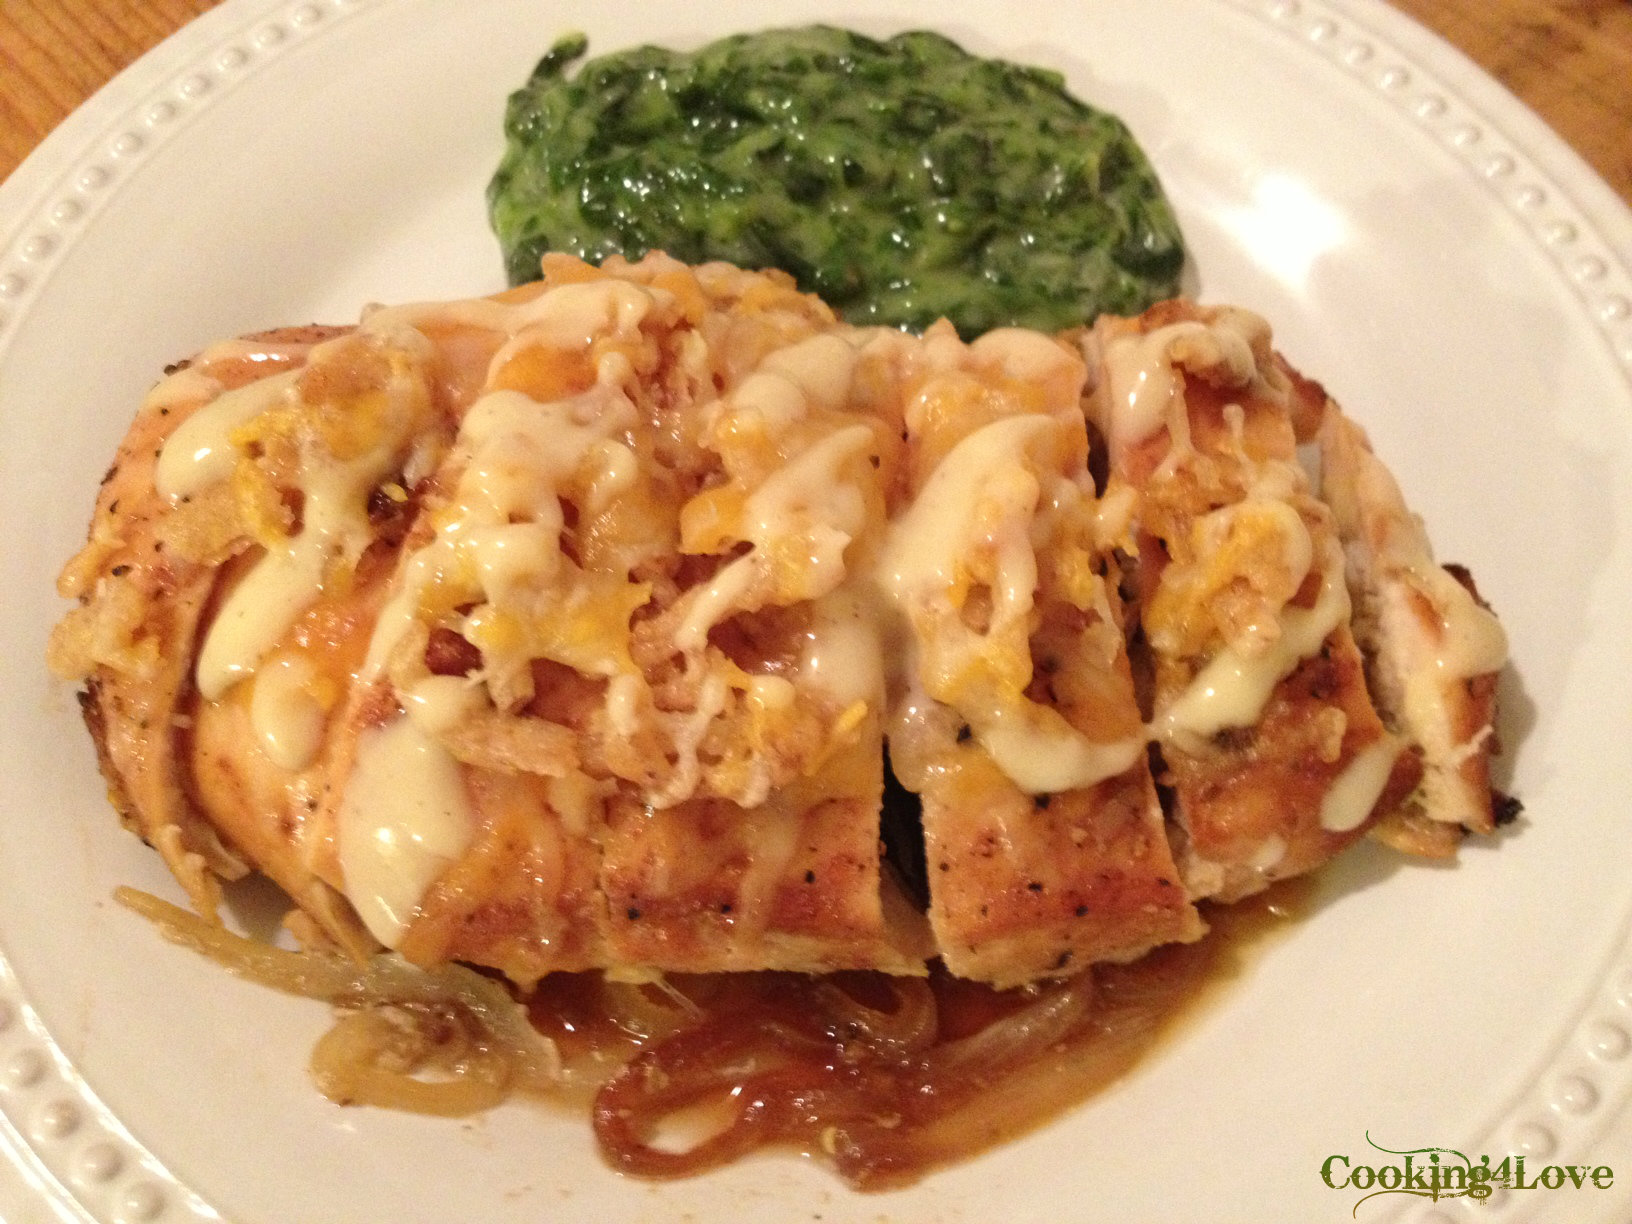 ... -Style Chicken and Caramelized Onions with Spinach | Cooking For Love